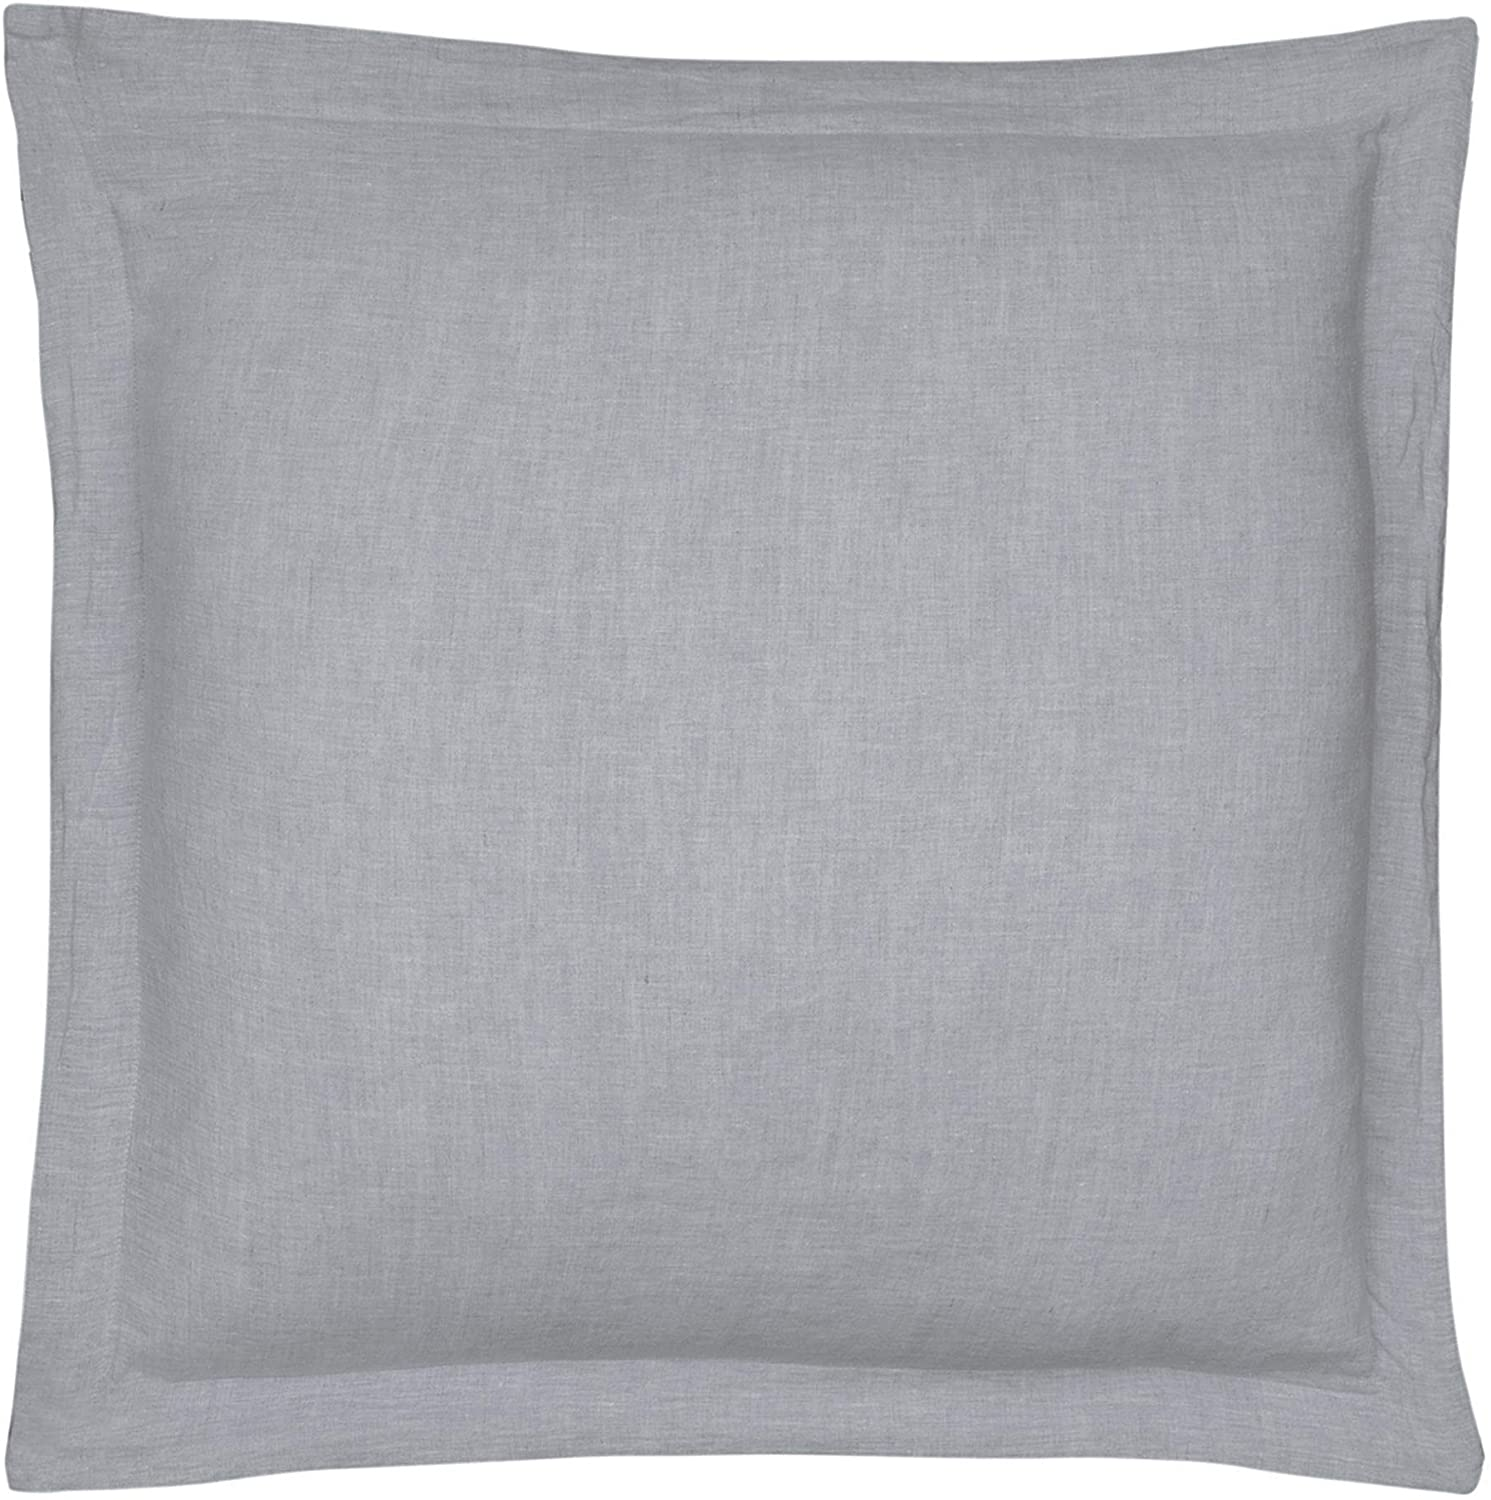 Levtex Home - 100% Linen - Euro Sham - Washed Linen in Light Grey - Sham Size (26 x 26in.)